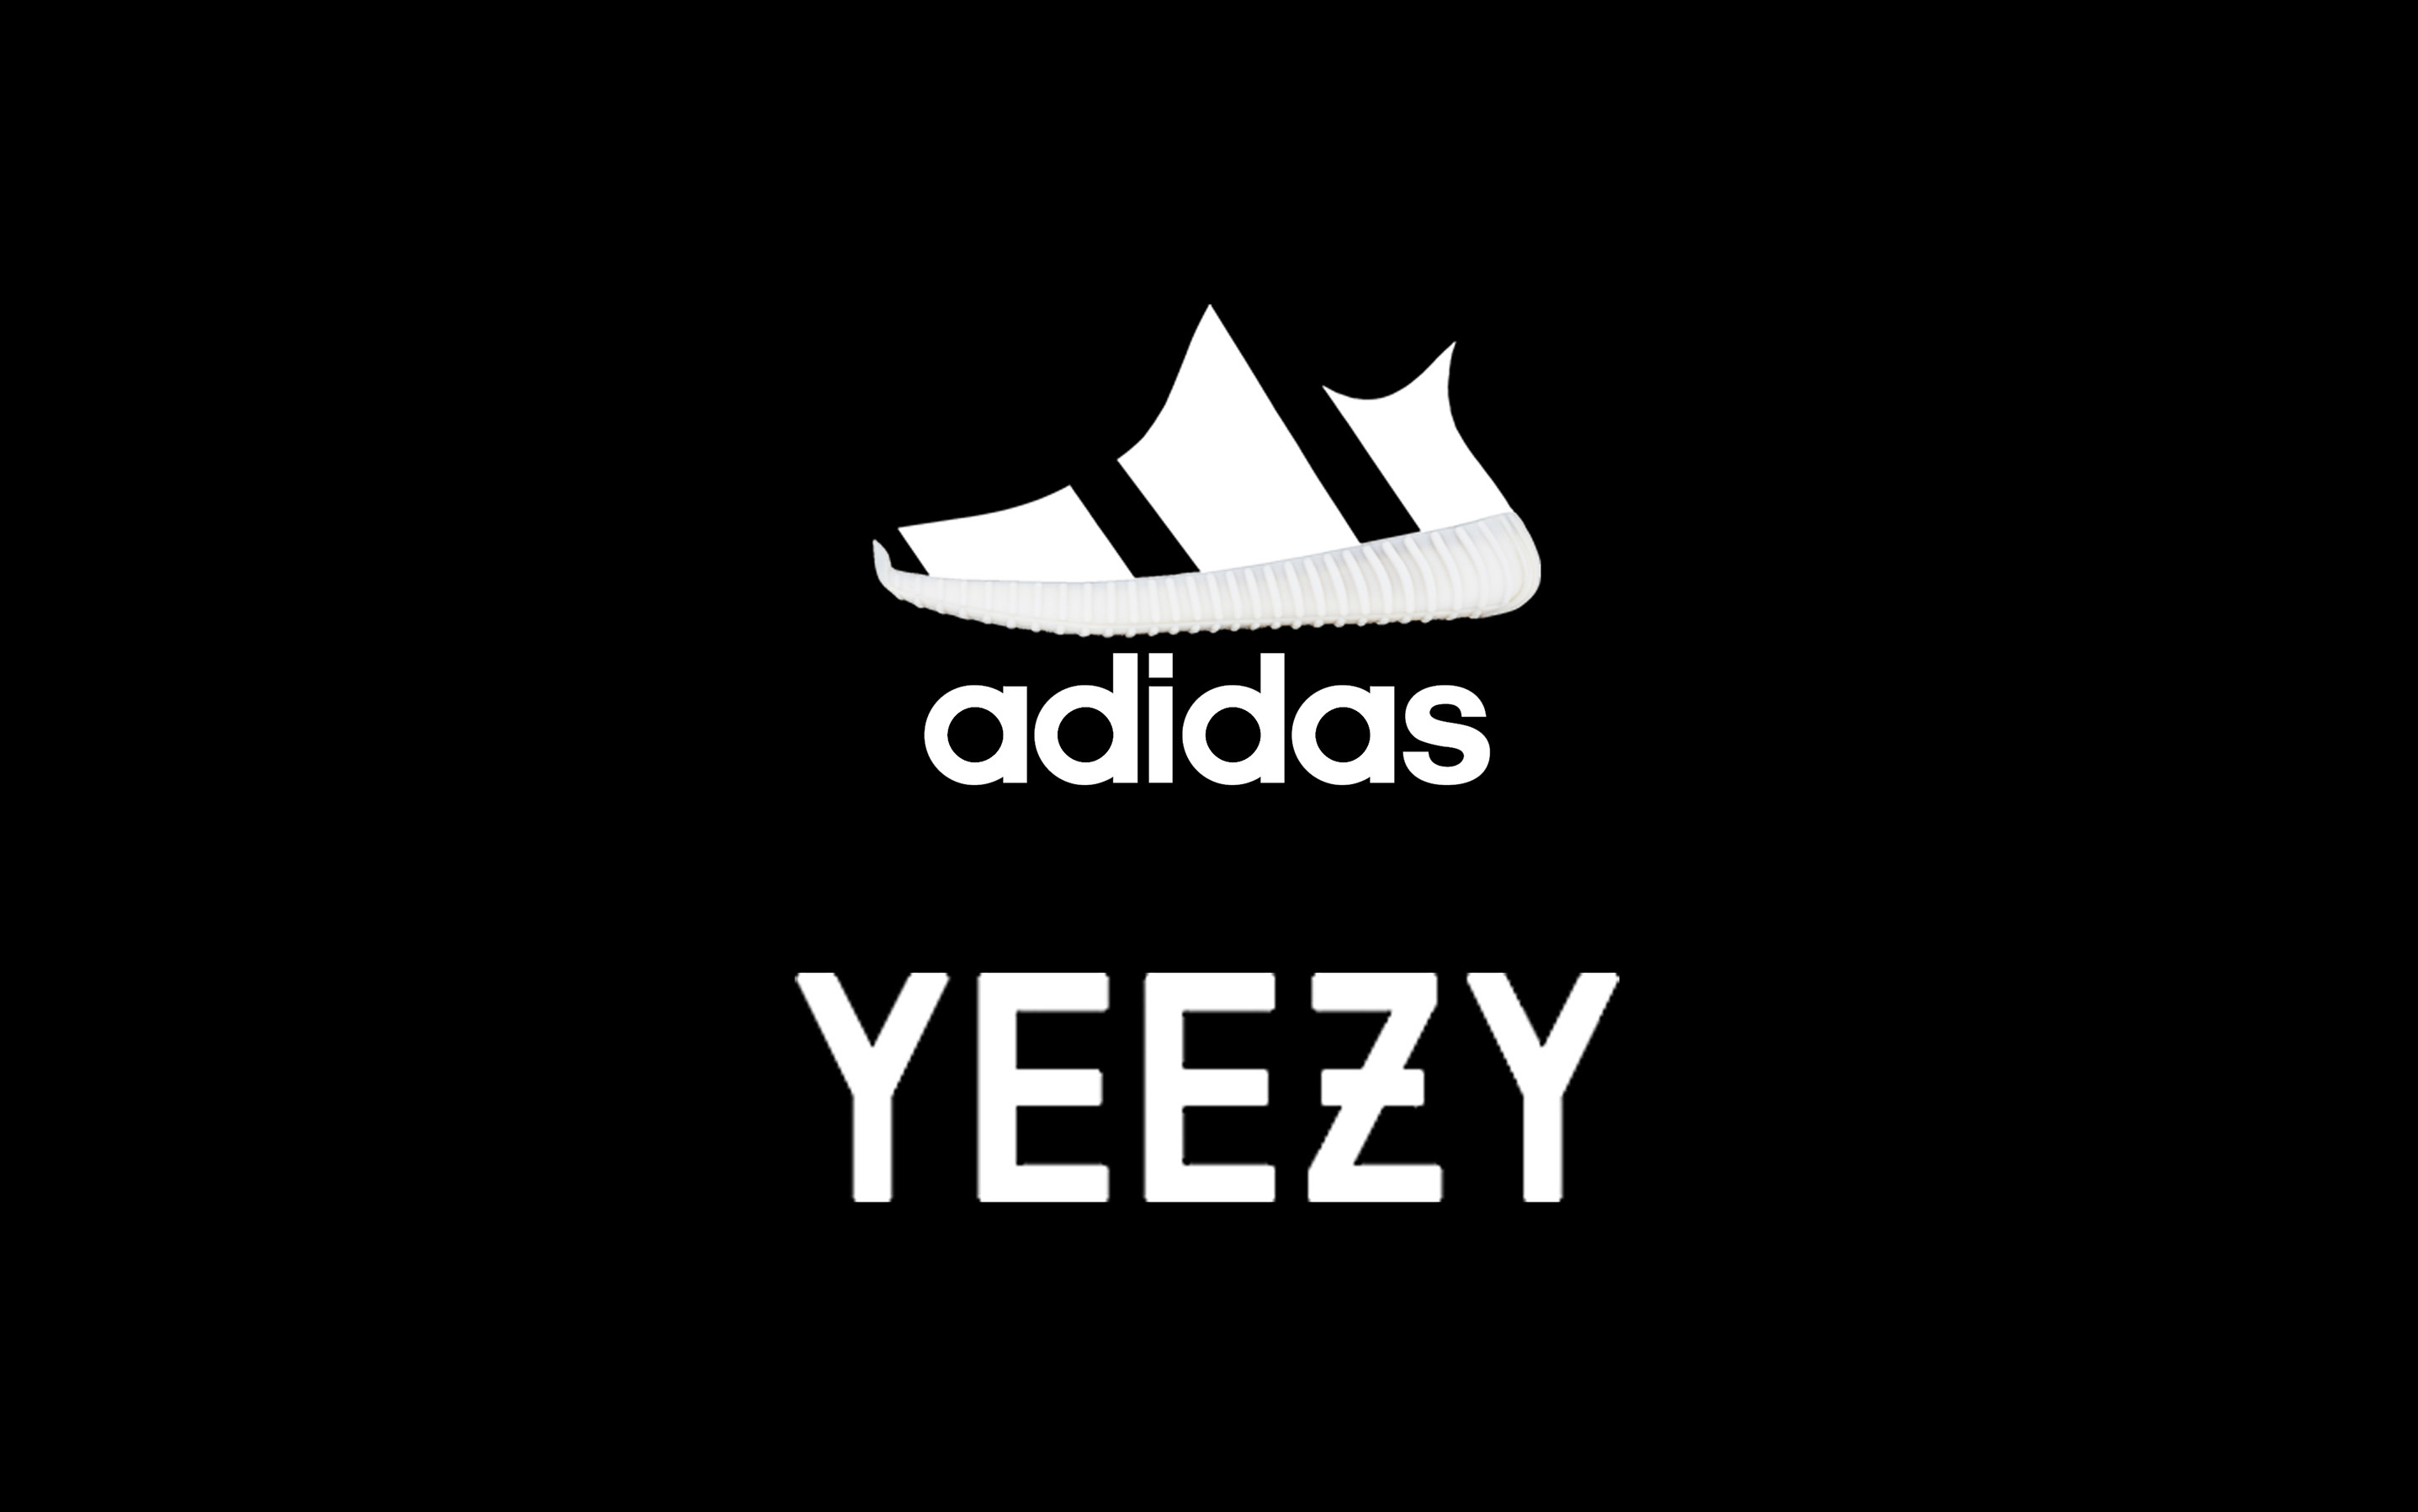 on sale 2dc7d b2208 Conspiracy theorists tend to find Illuminati symbolism in many current logos,  and the Yeezy emblem is not an exception. For instance, the Nike Air Yeezy  2 ...